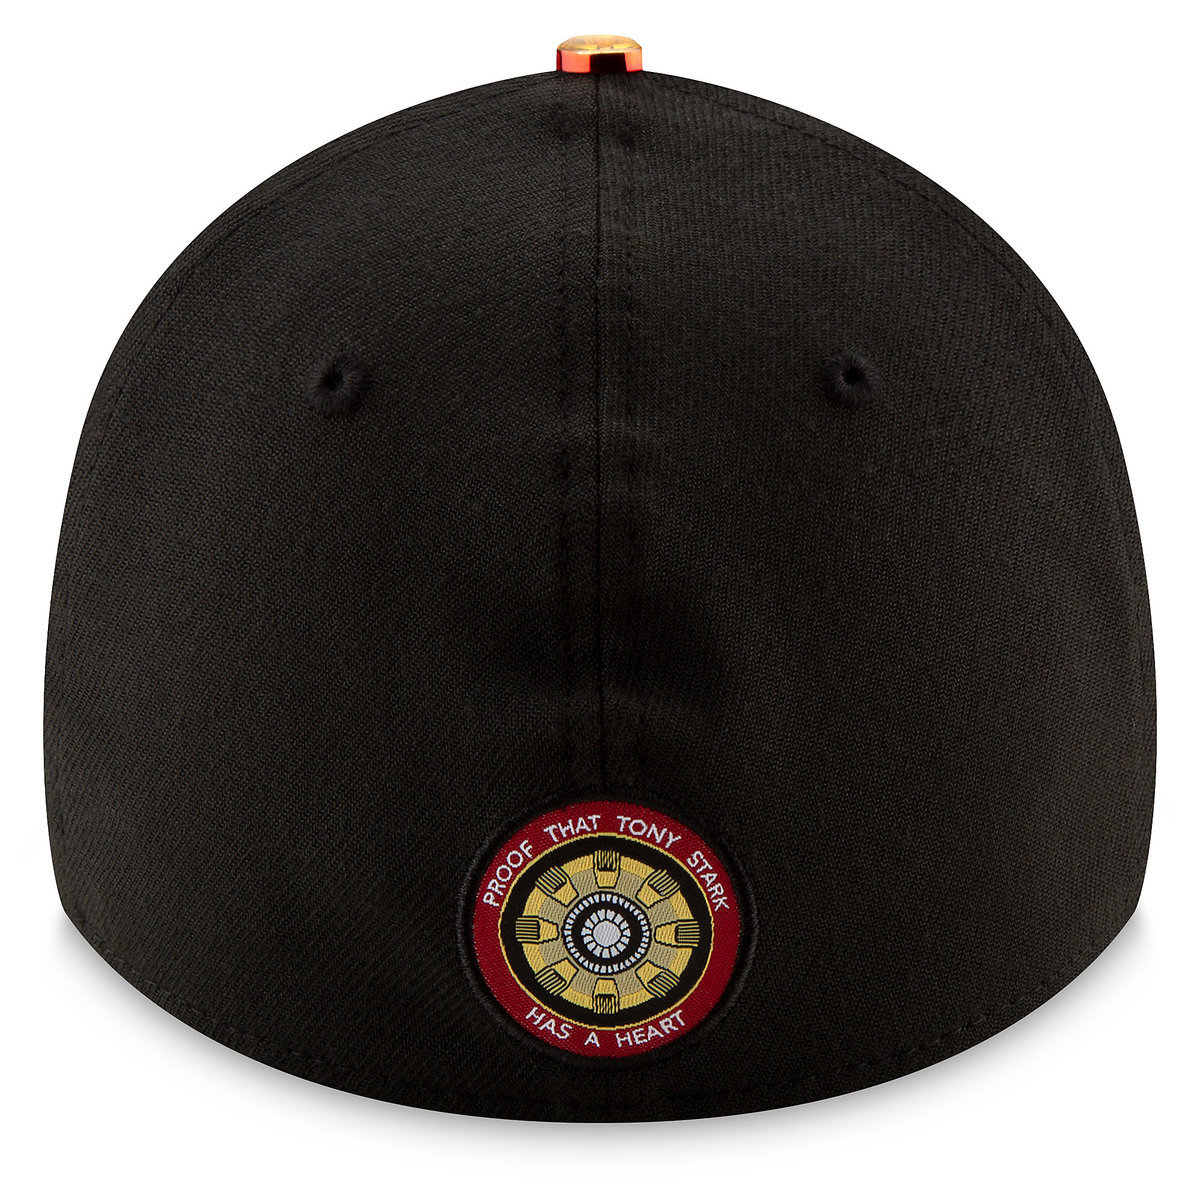 59be21b5adb3c Limited Edition Collector Boxed Iron Man Cap by New Era - Marvel Studios  Crew Cap Collection